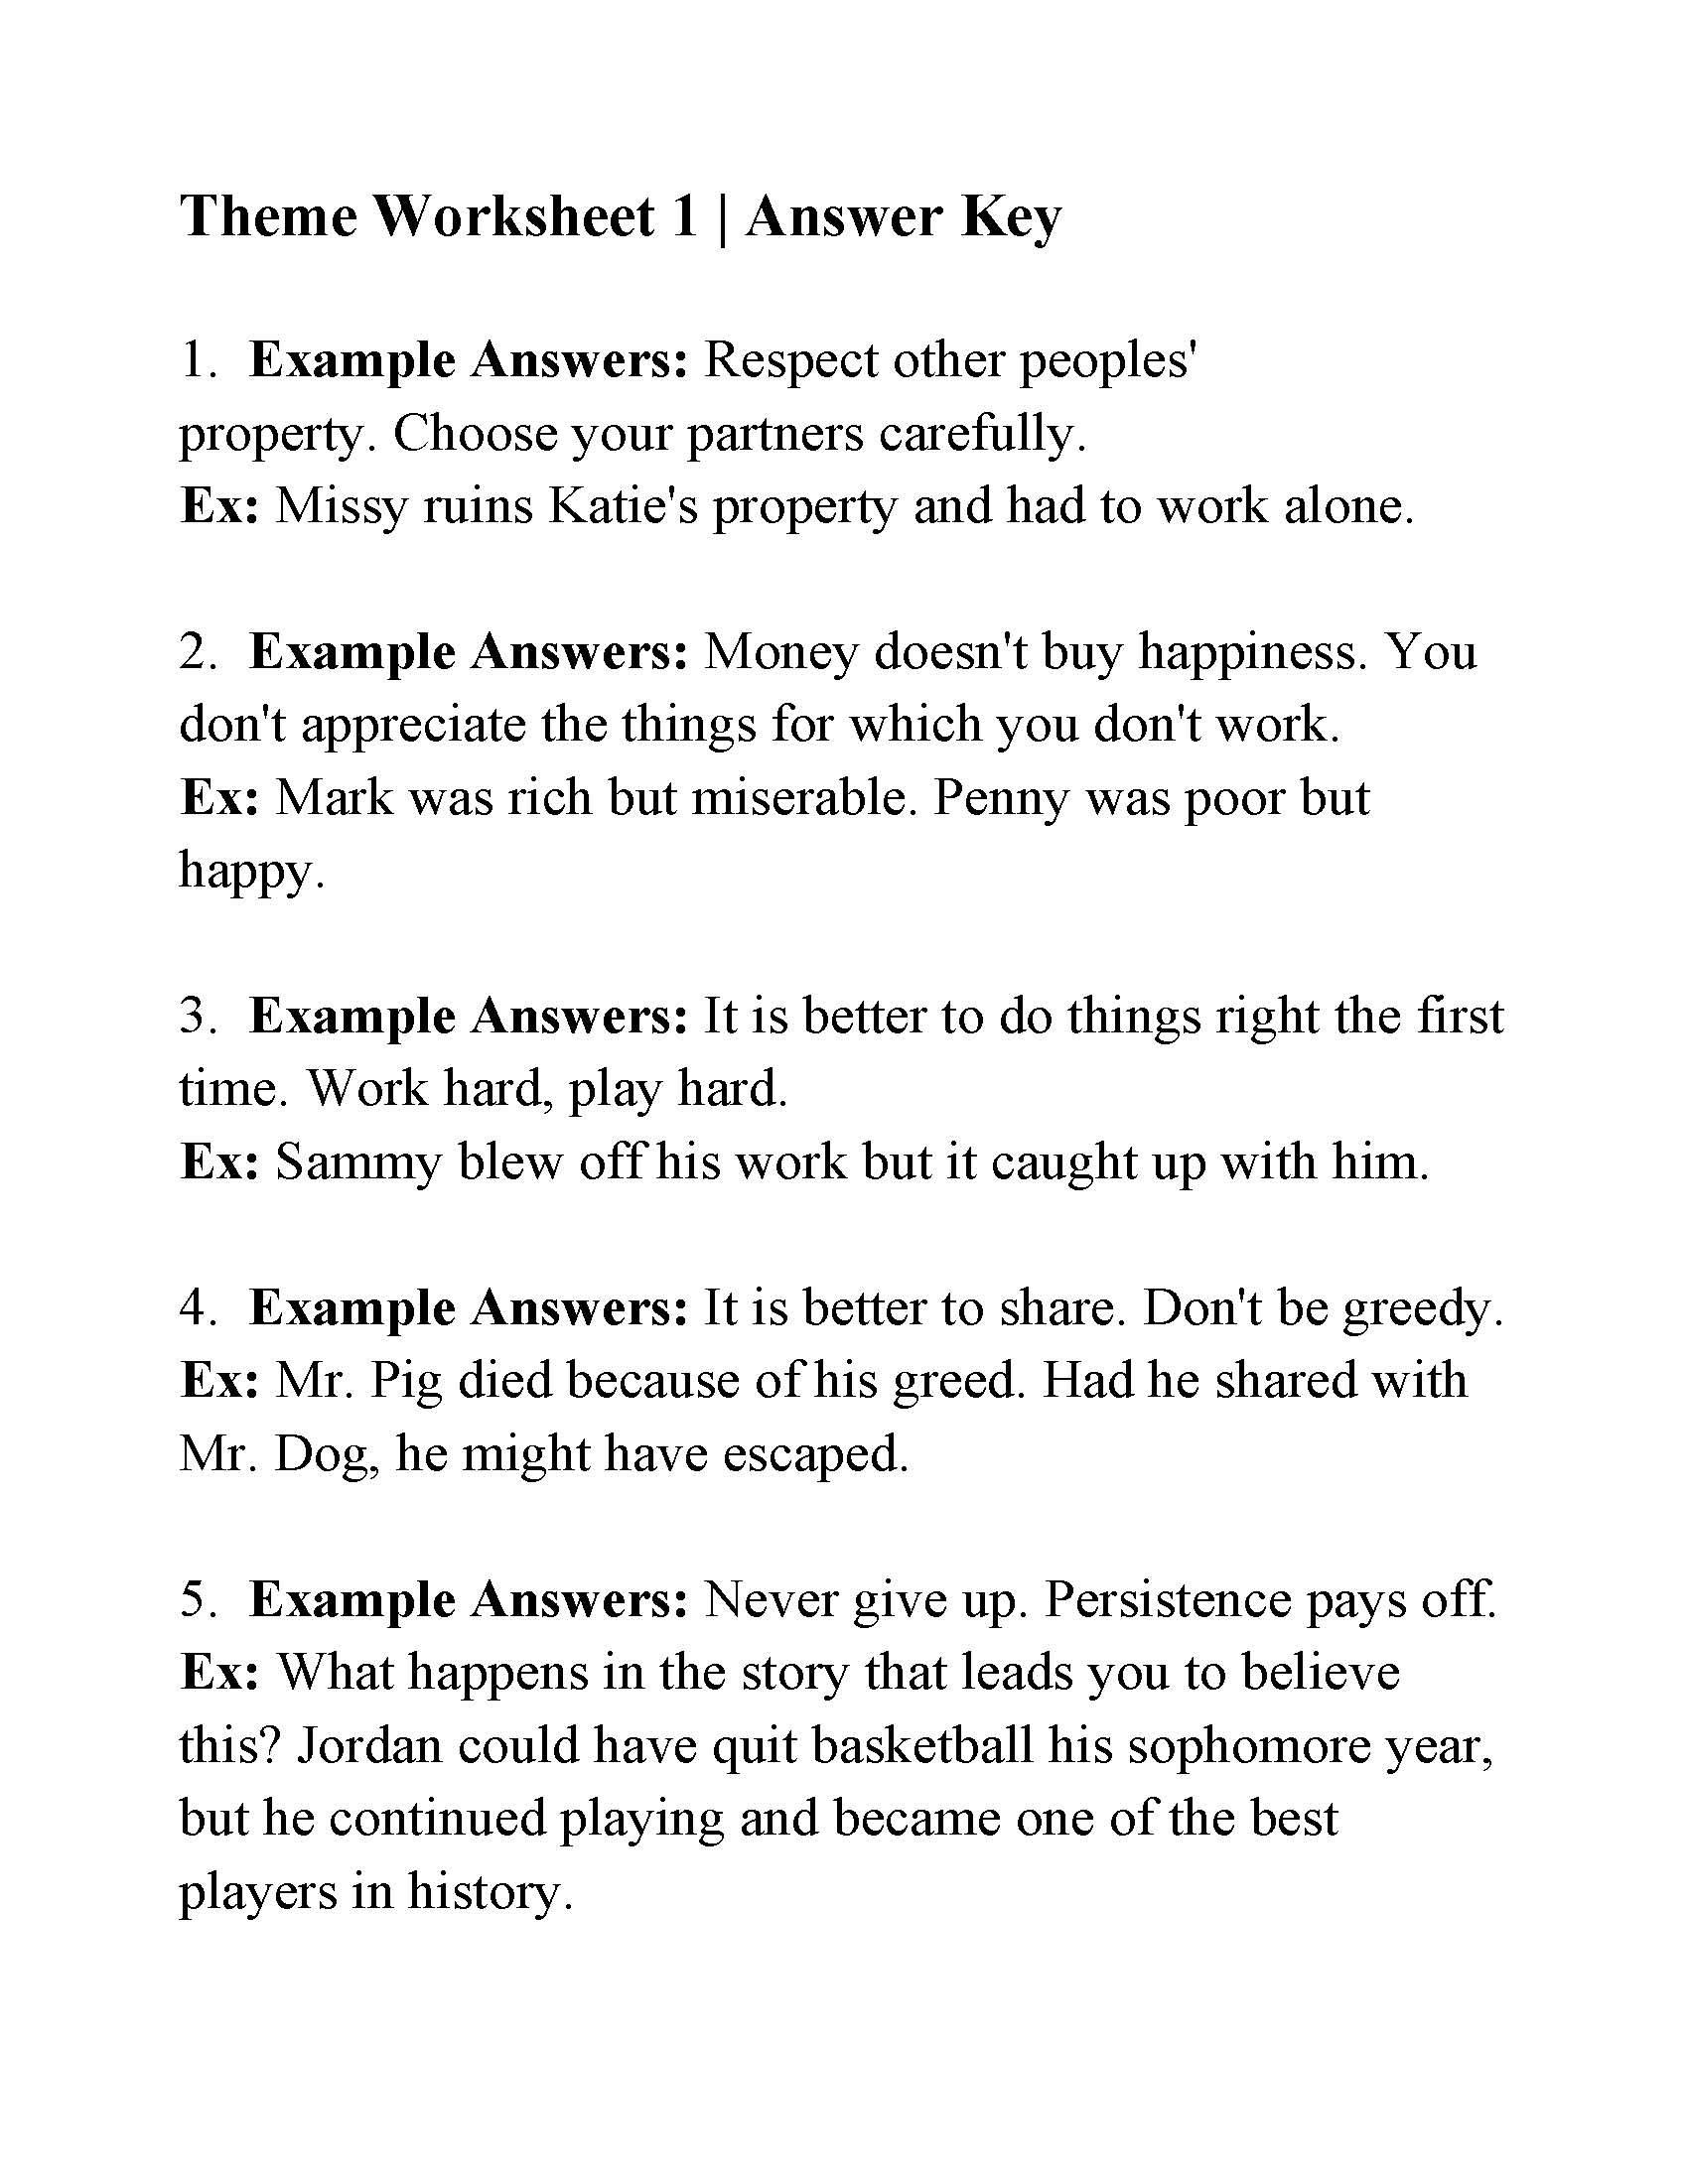 Theme Worksheets 5th Grade This is the Answer Key for the theme Worksheet 1